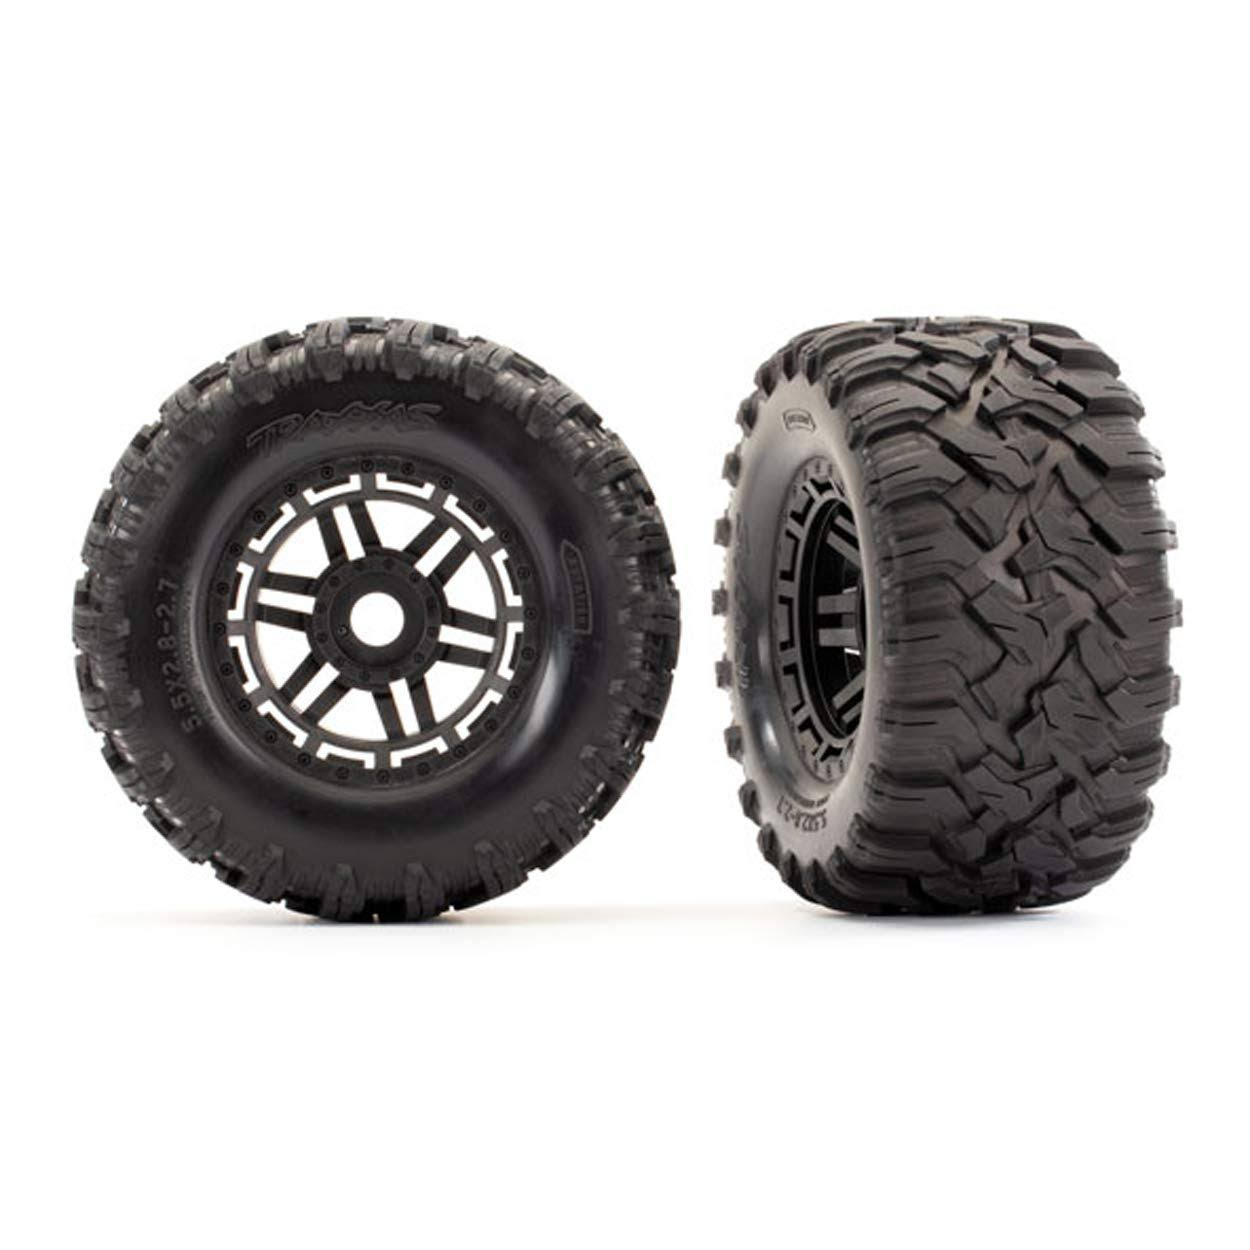 Traxxas 8972 Tires & Wheels/Black Wheels, Maxx All-Terrain Tires, Foams (2) 17mm